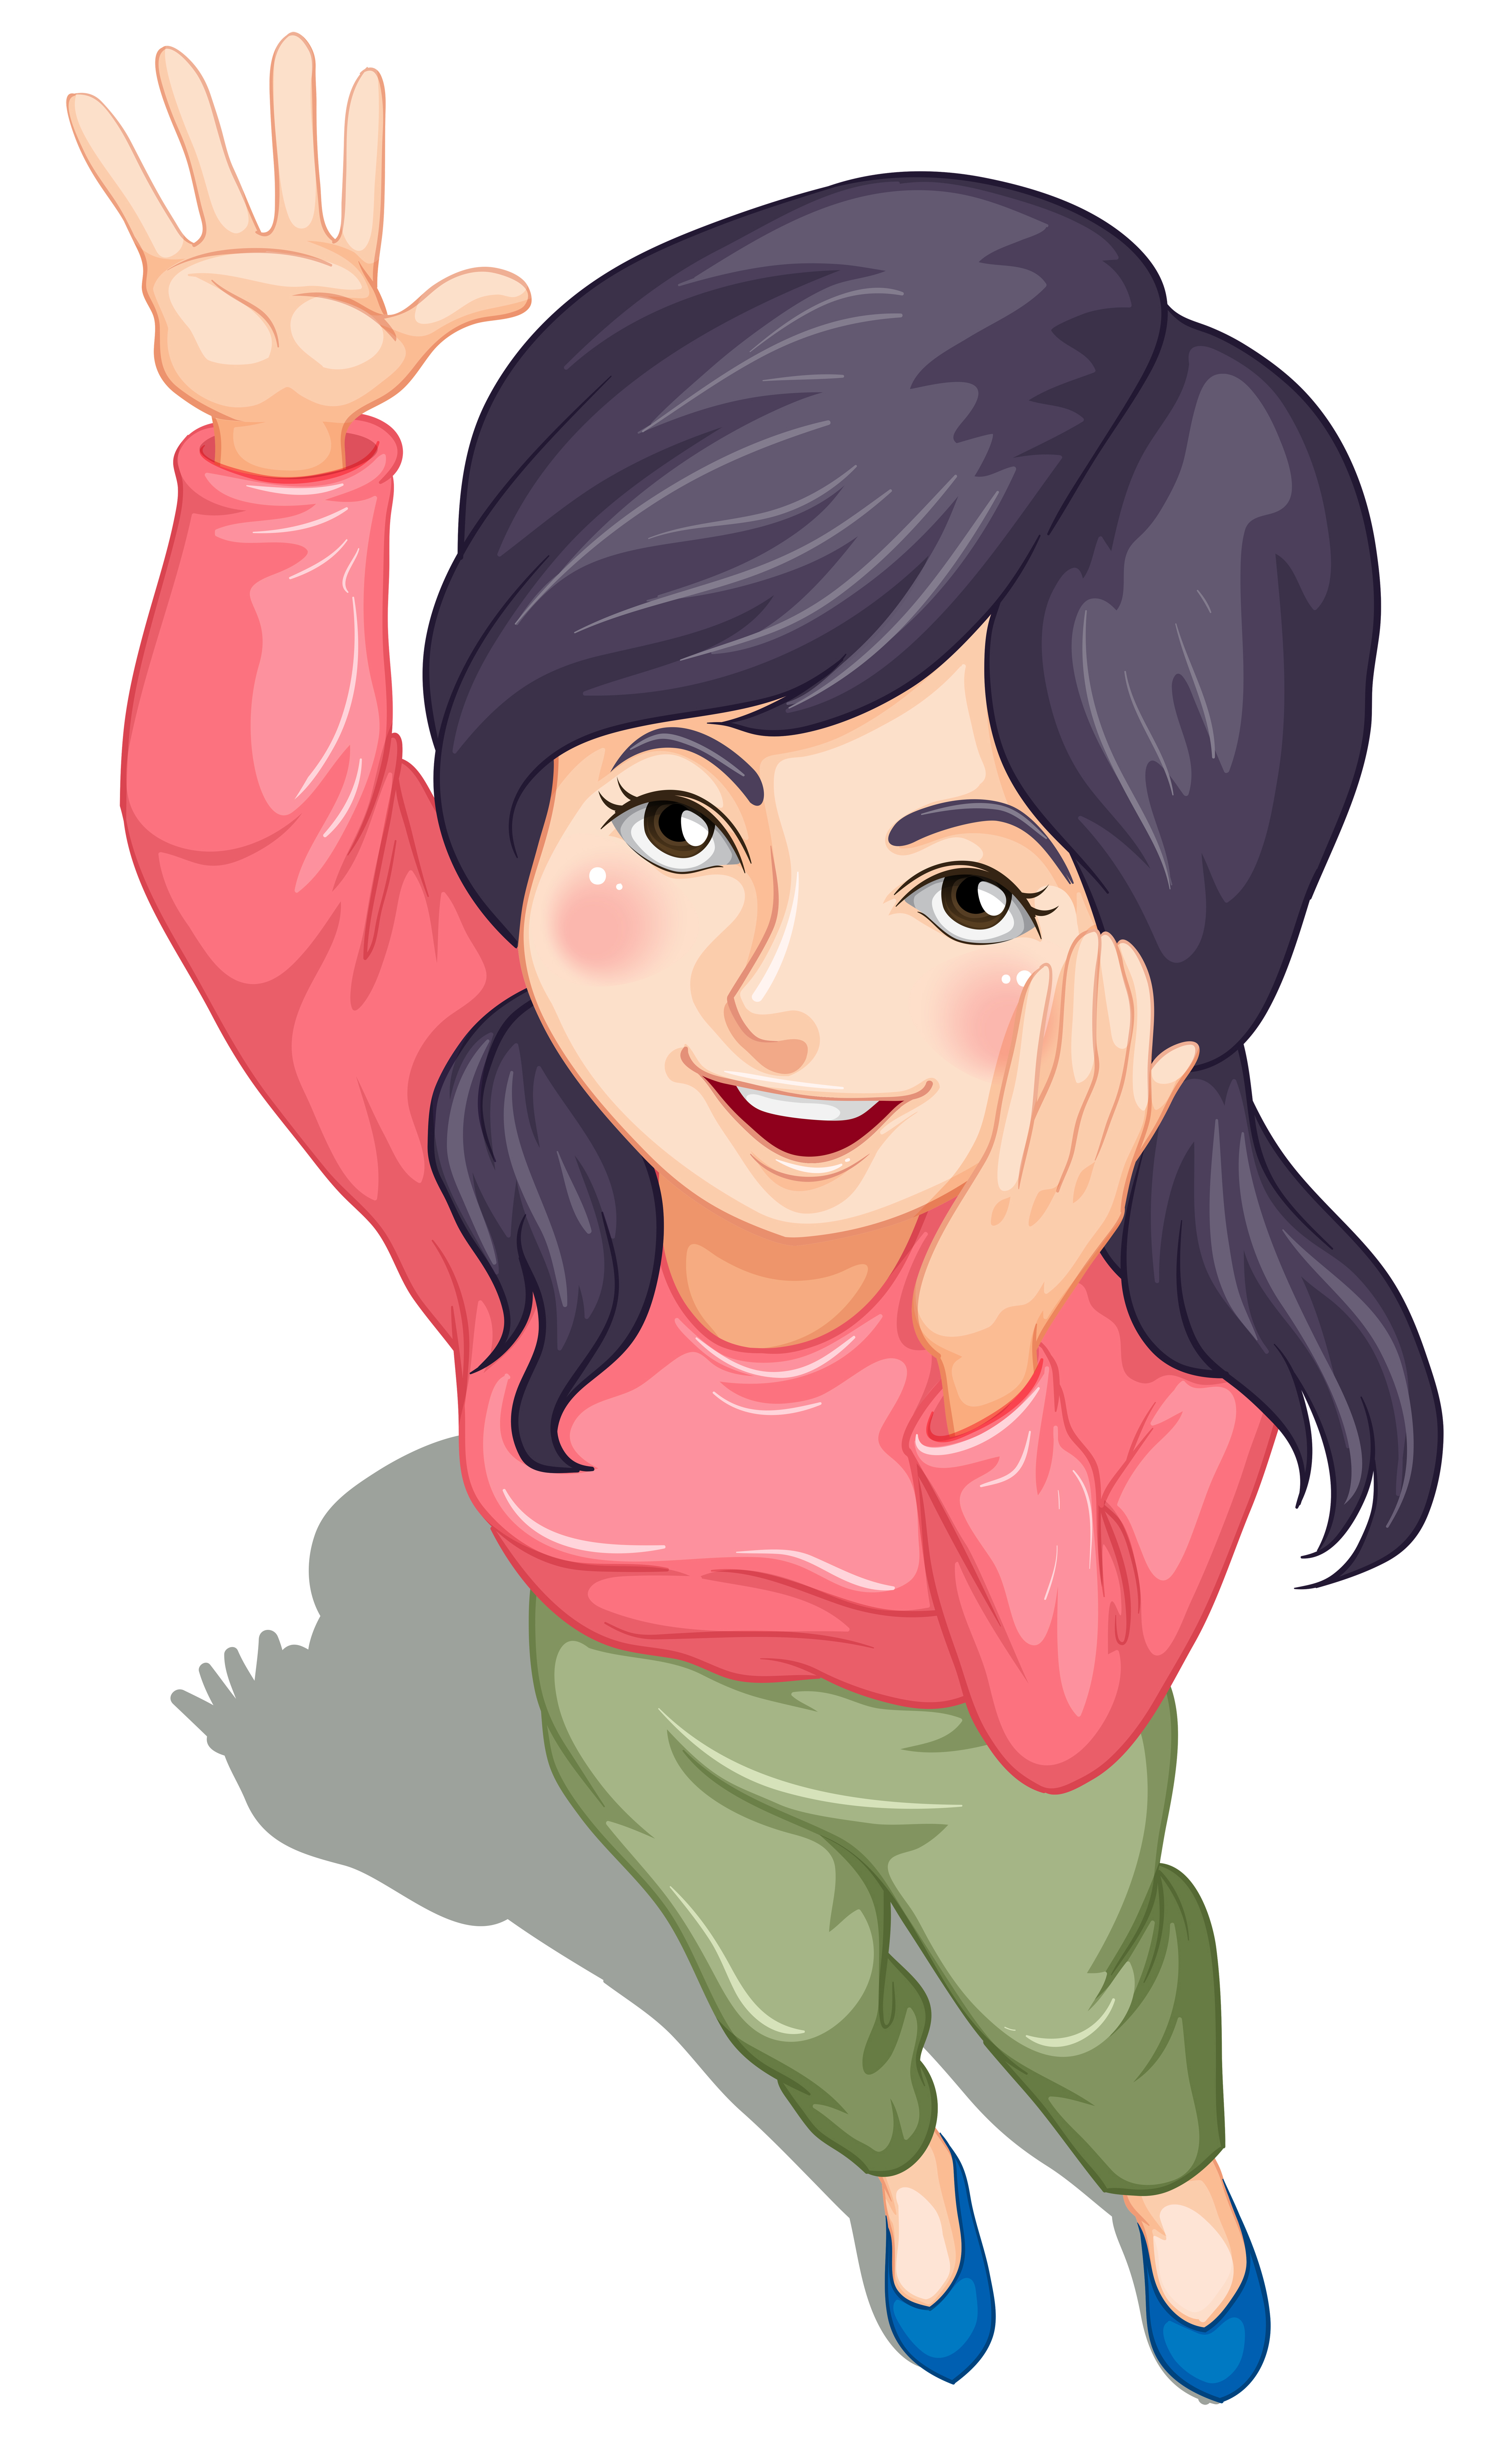 A Topview Of A Young Girl Waving Download Free Vectors